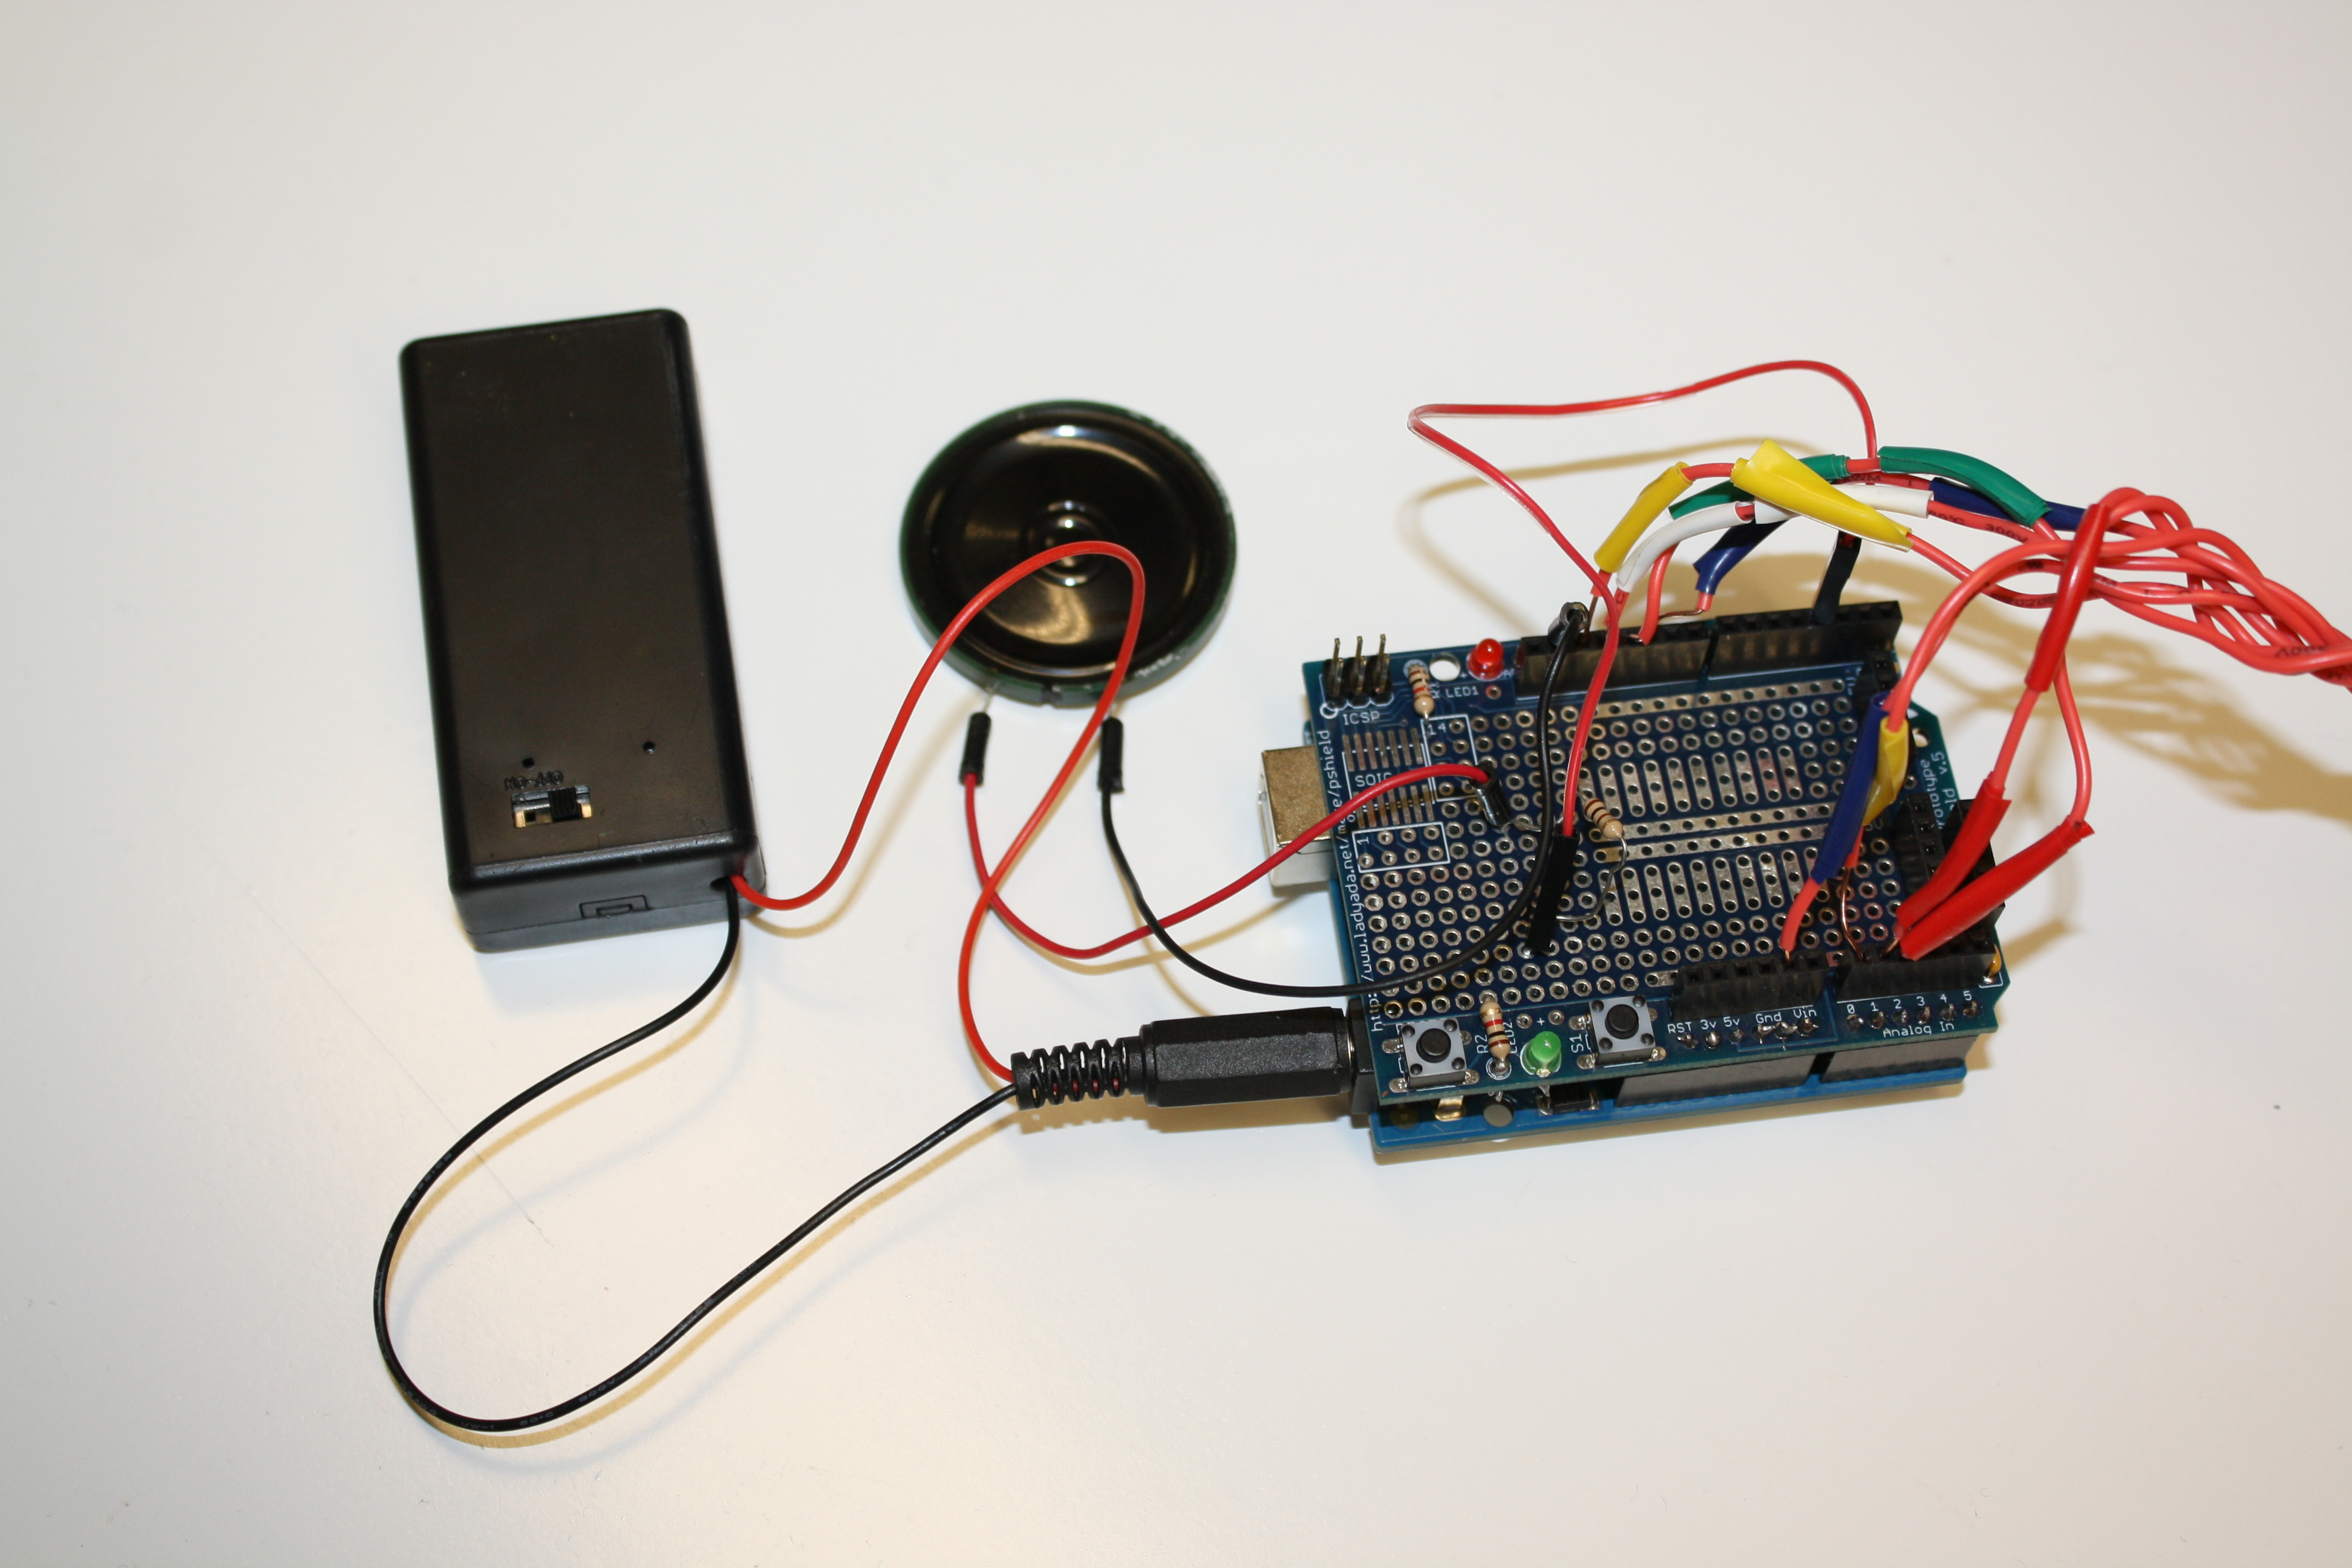 Picture of Insert Wires Into Arduino and Hook Up Speaker